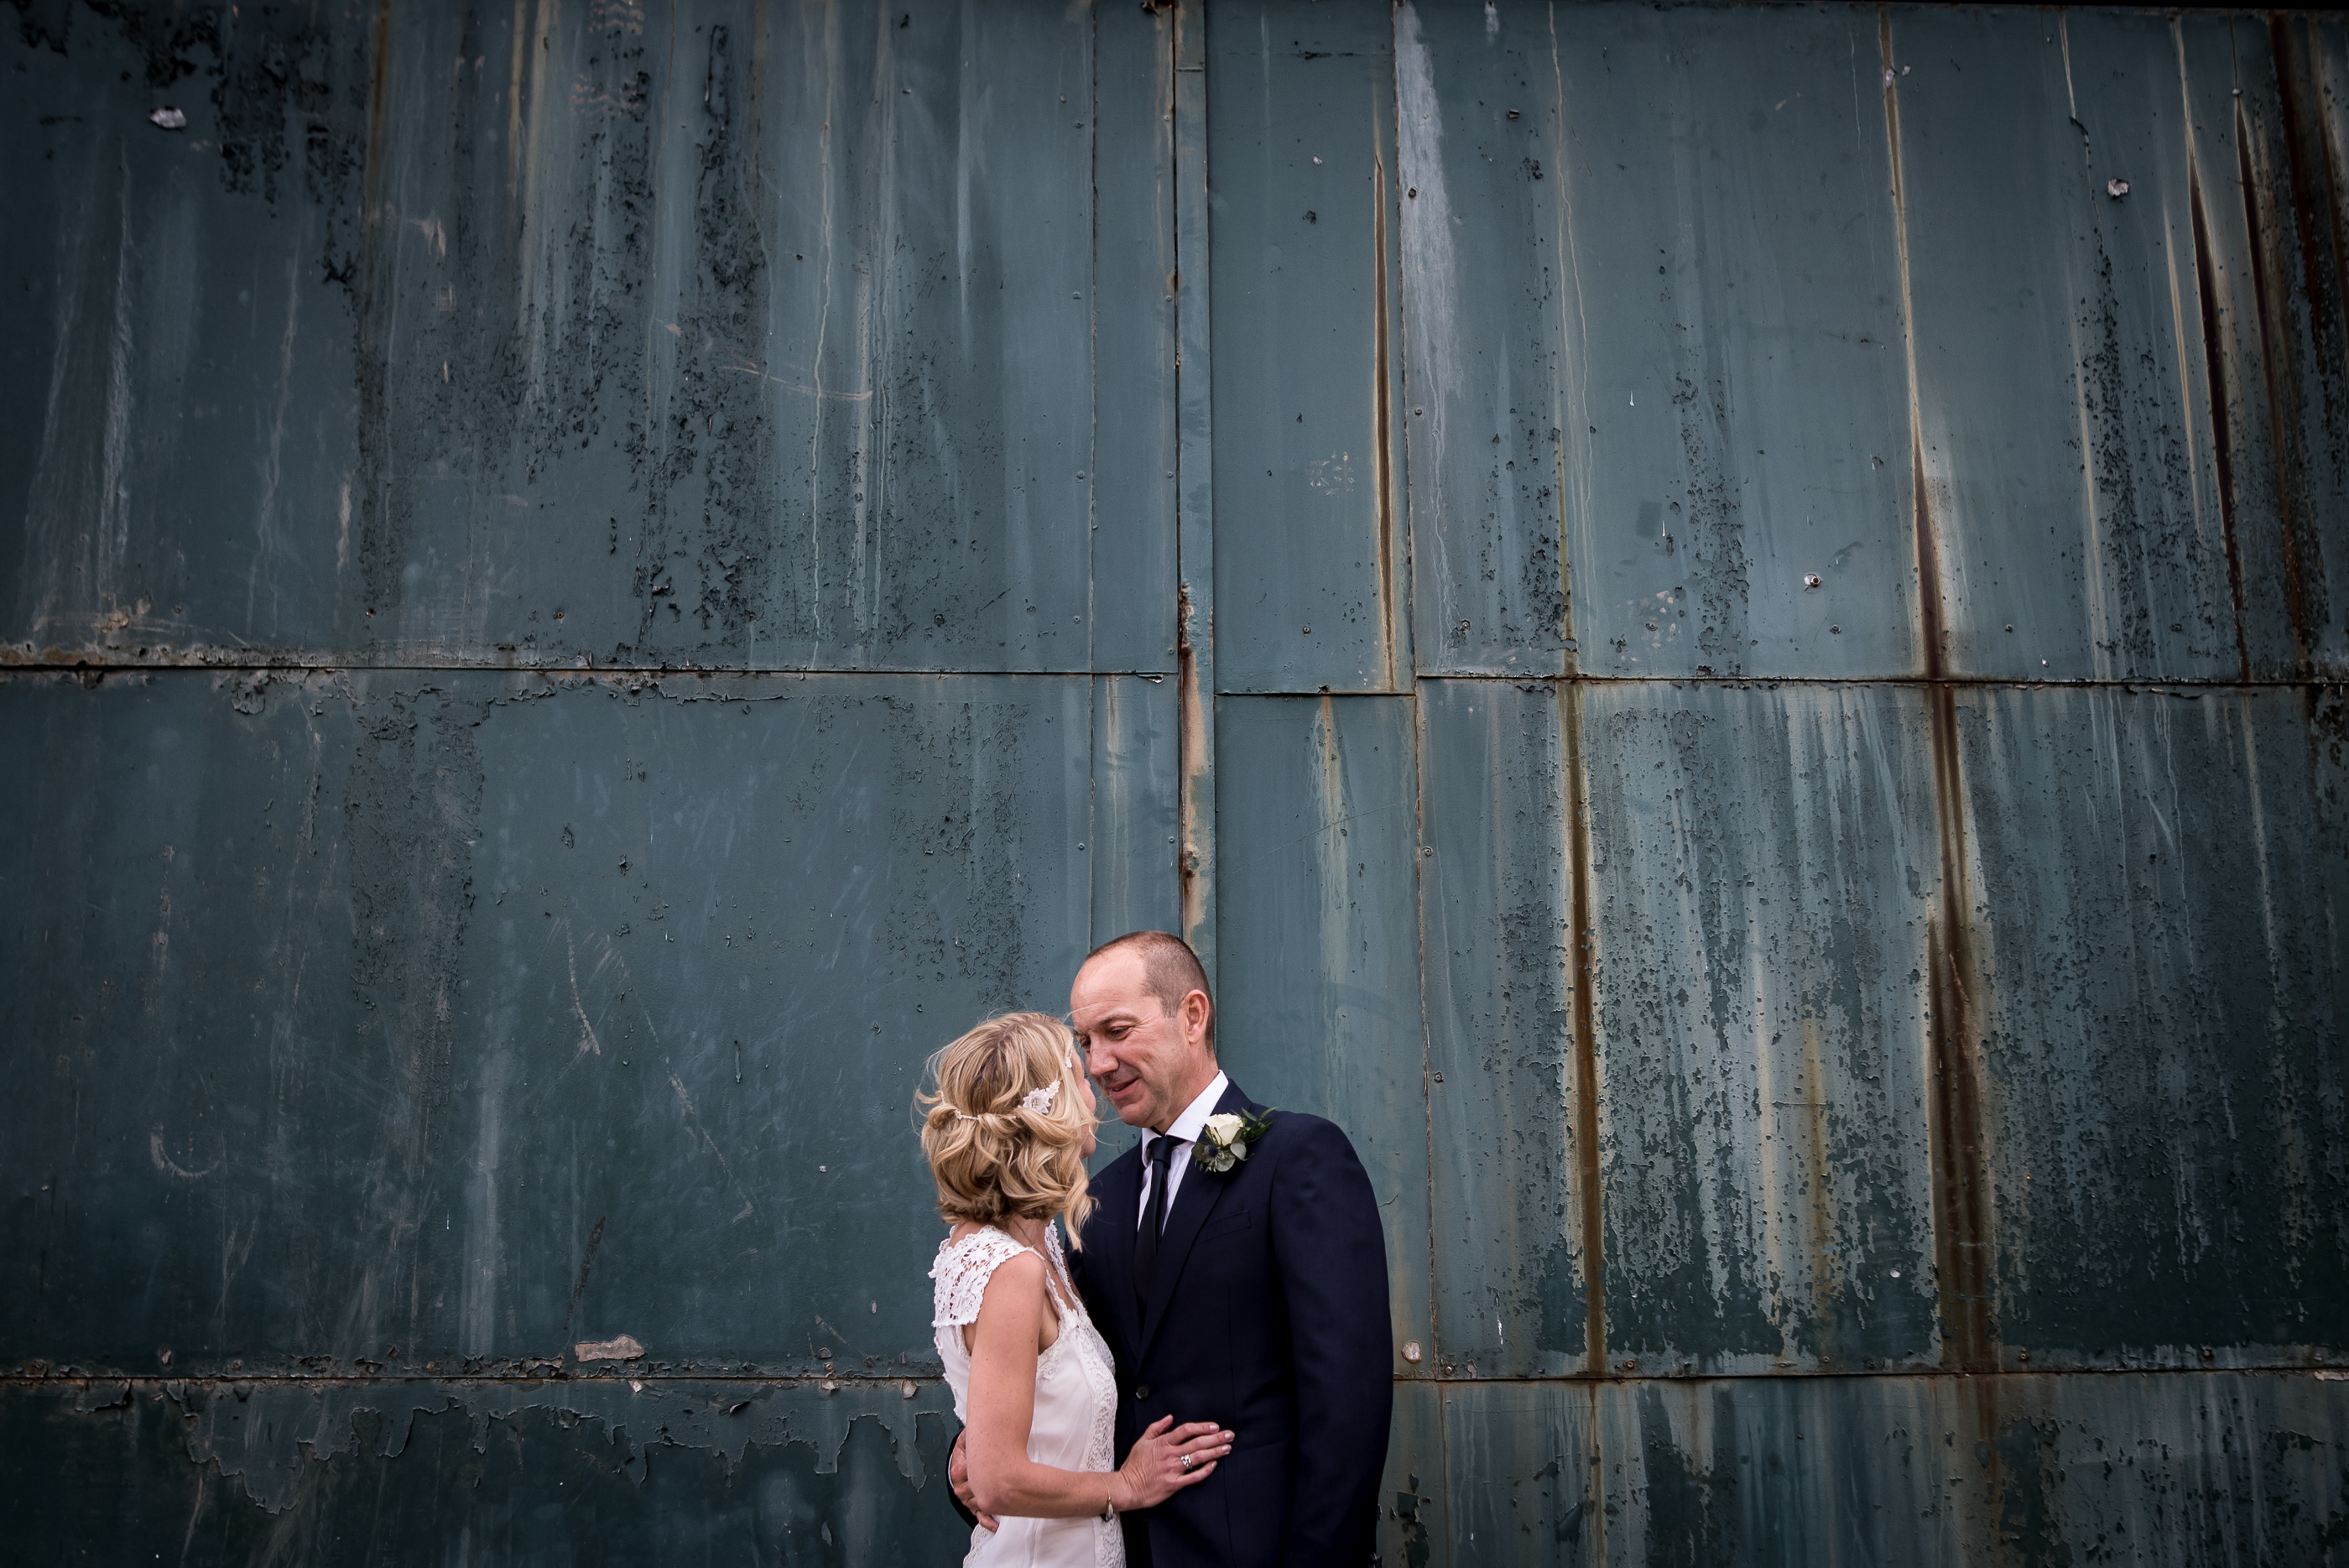 Wedding couple in front of blue rusty door